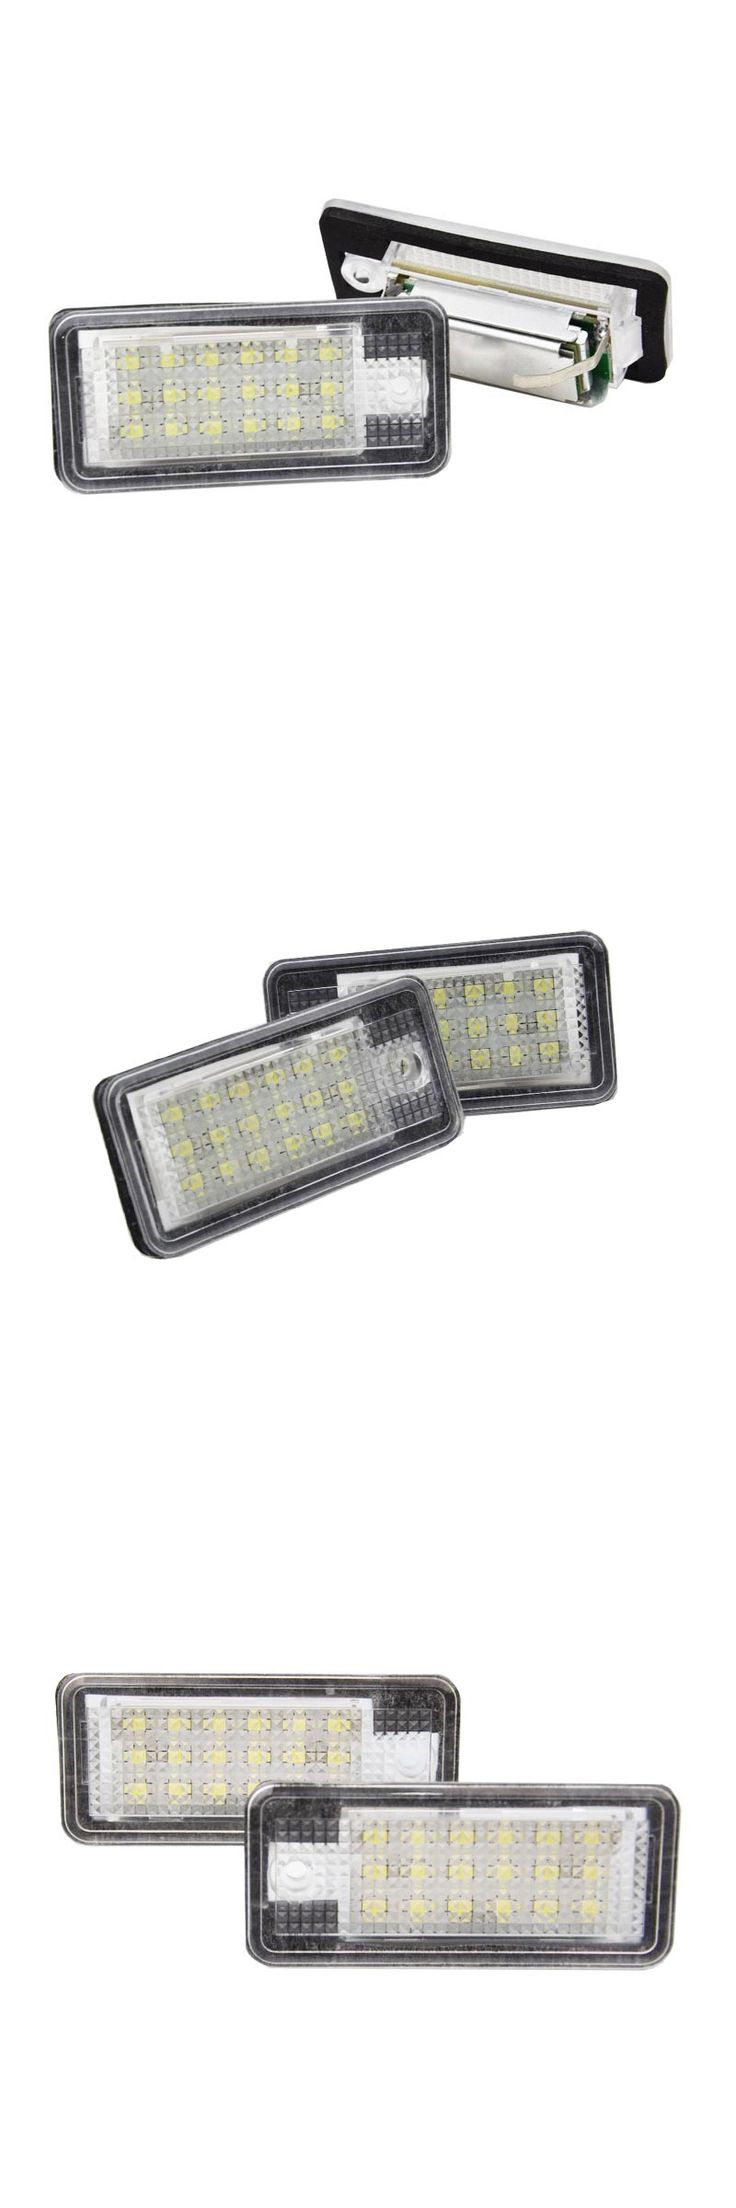 2X high power tail light  smd led number plate lights for AUDI A3 A6 Q7 Car License Plate Light LED Number Lamp 6W 12V 24 LED